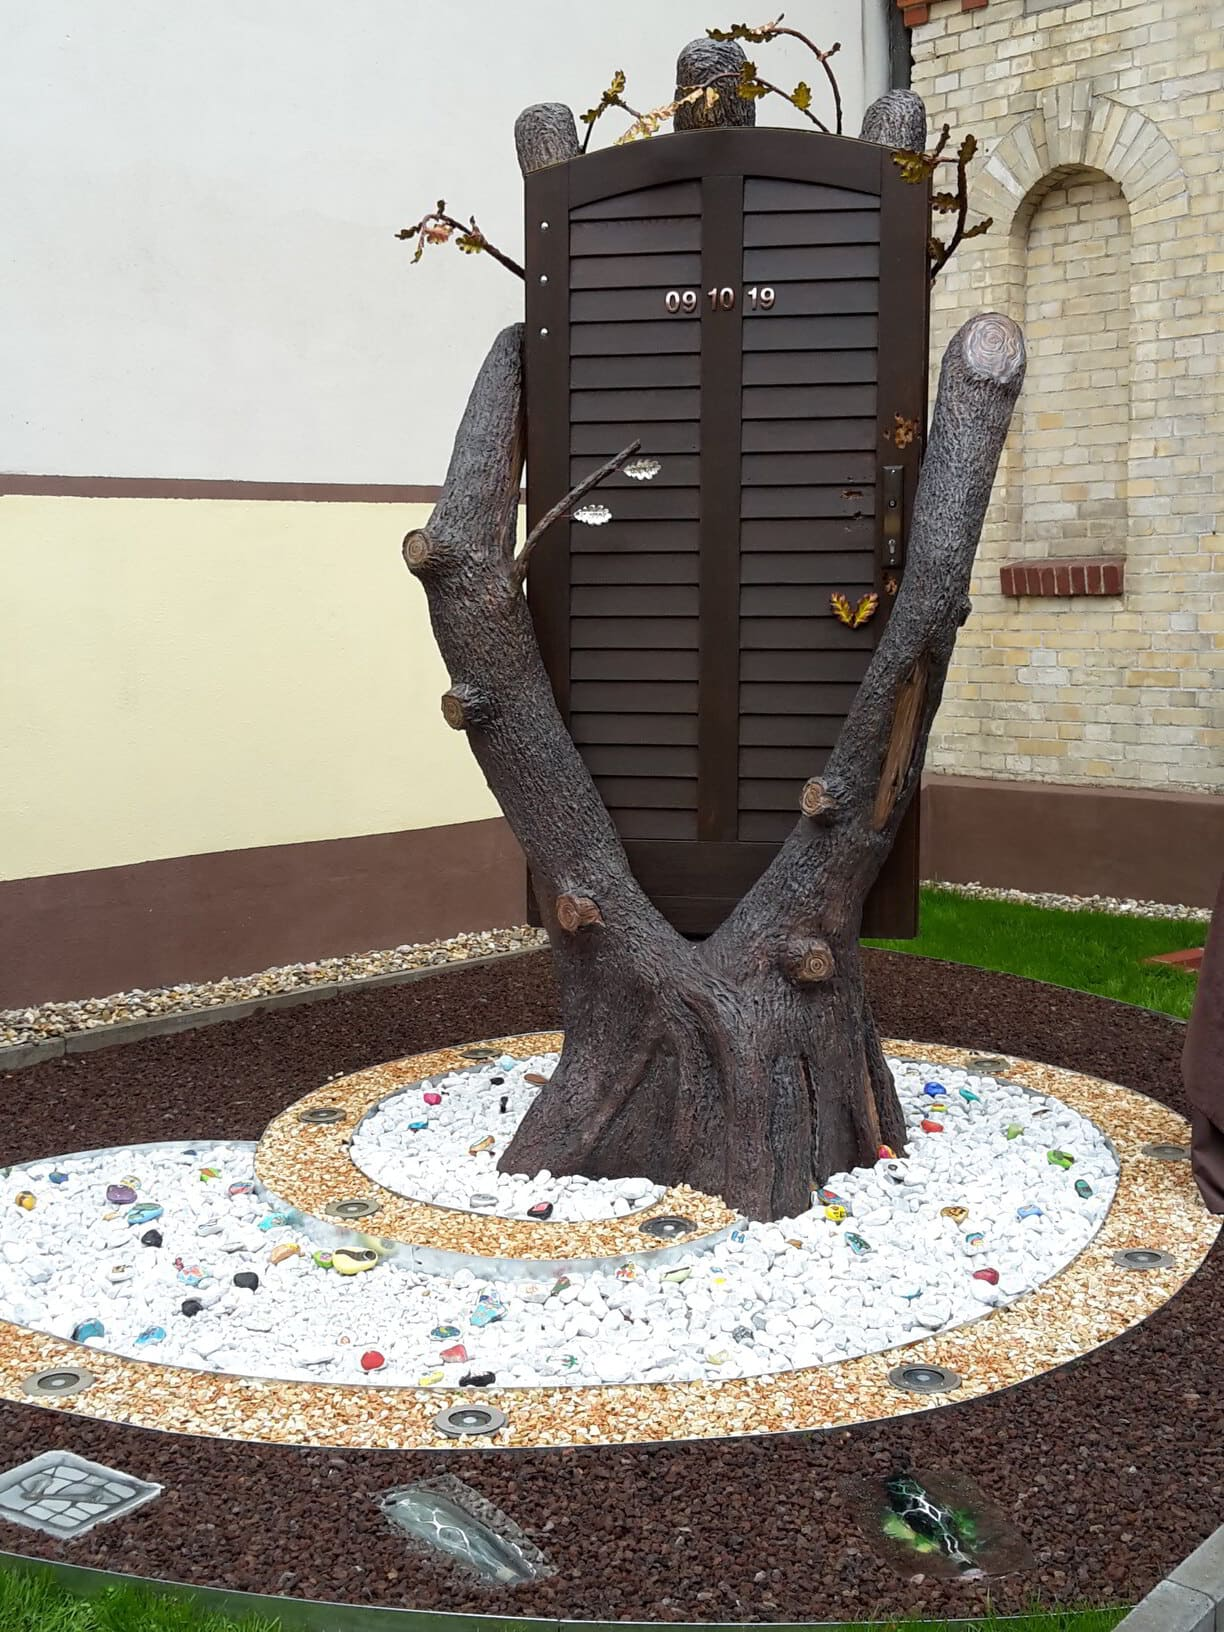 Monument designed by the artist Lidia Edel 2020 in memory of the assassination attempt